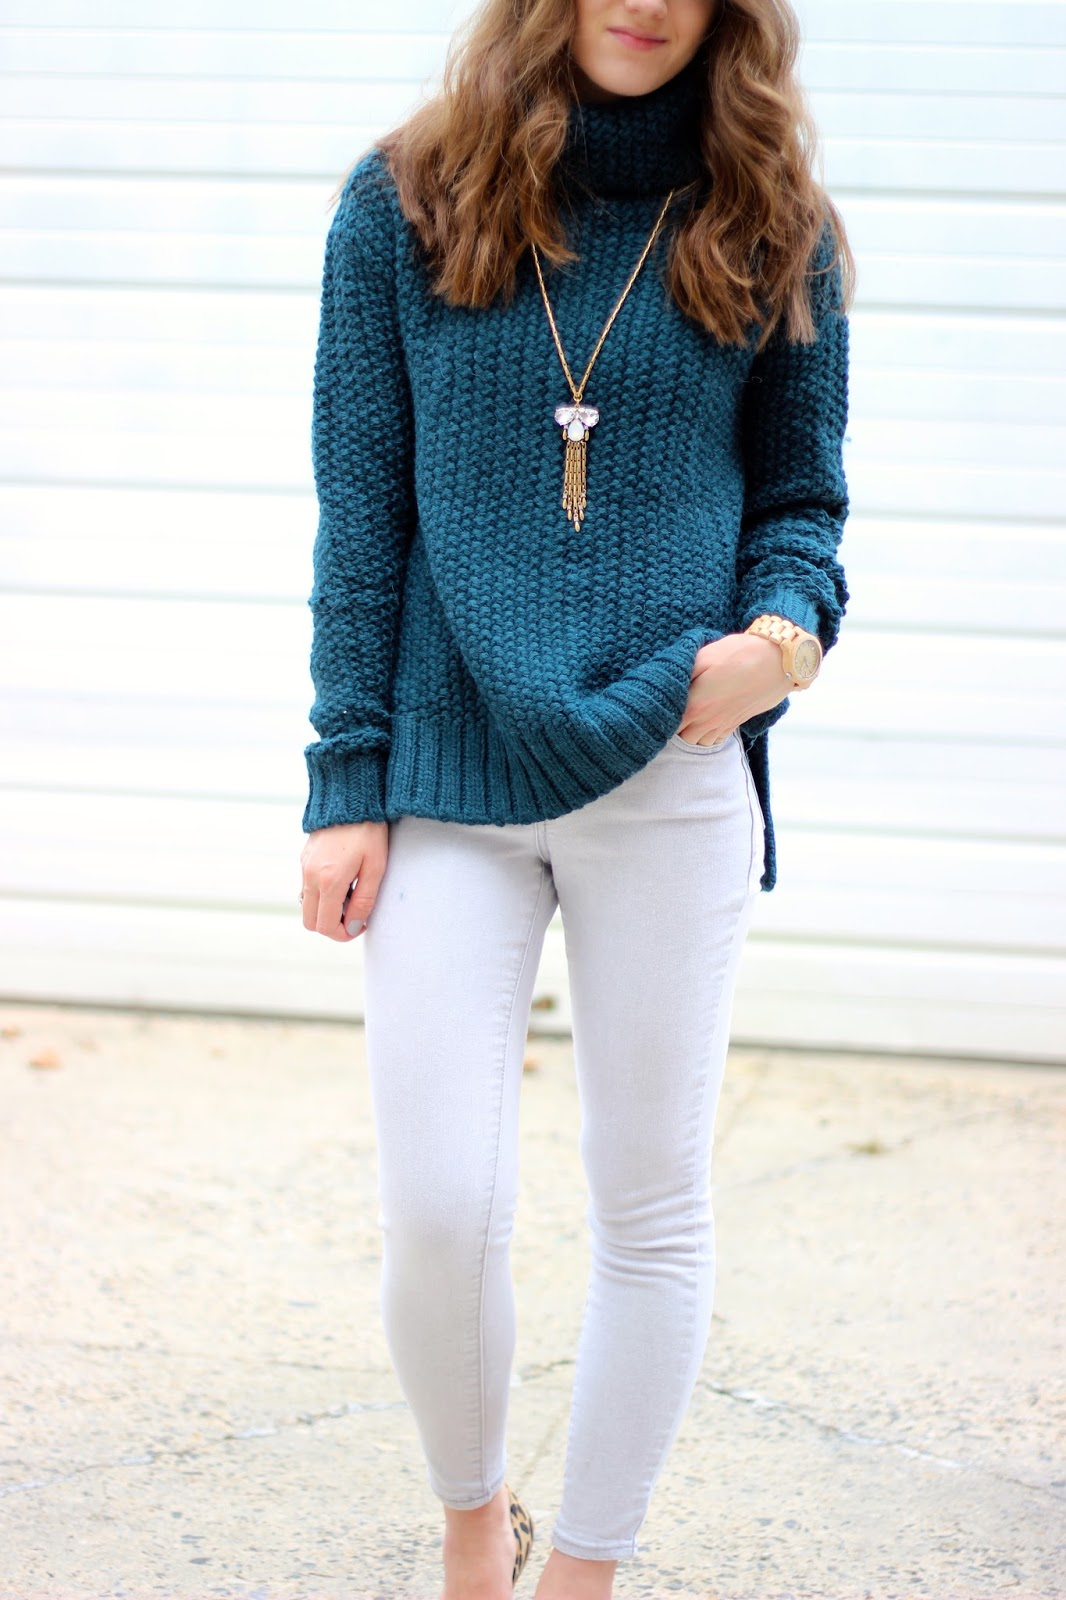 Fall Preview Friday | Chunky Knitwear